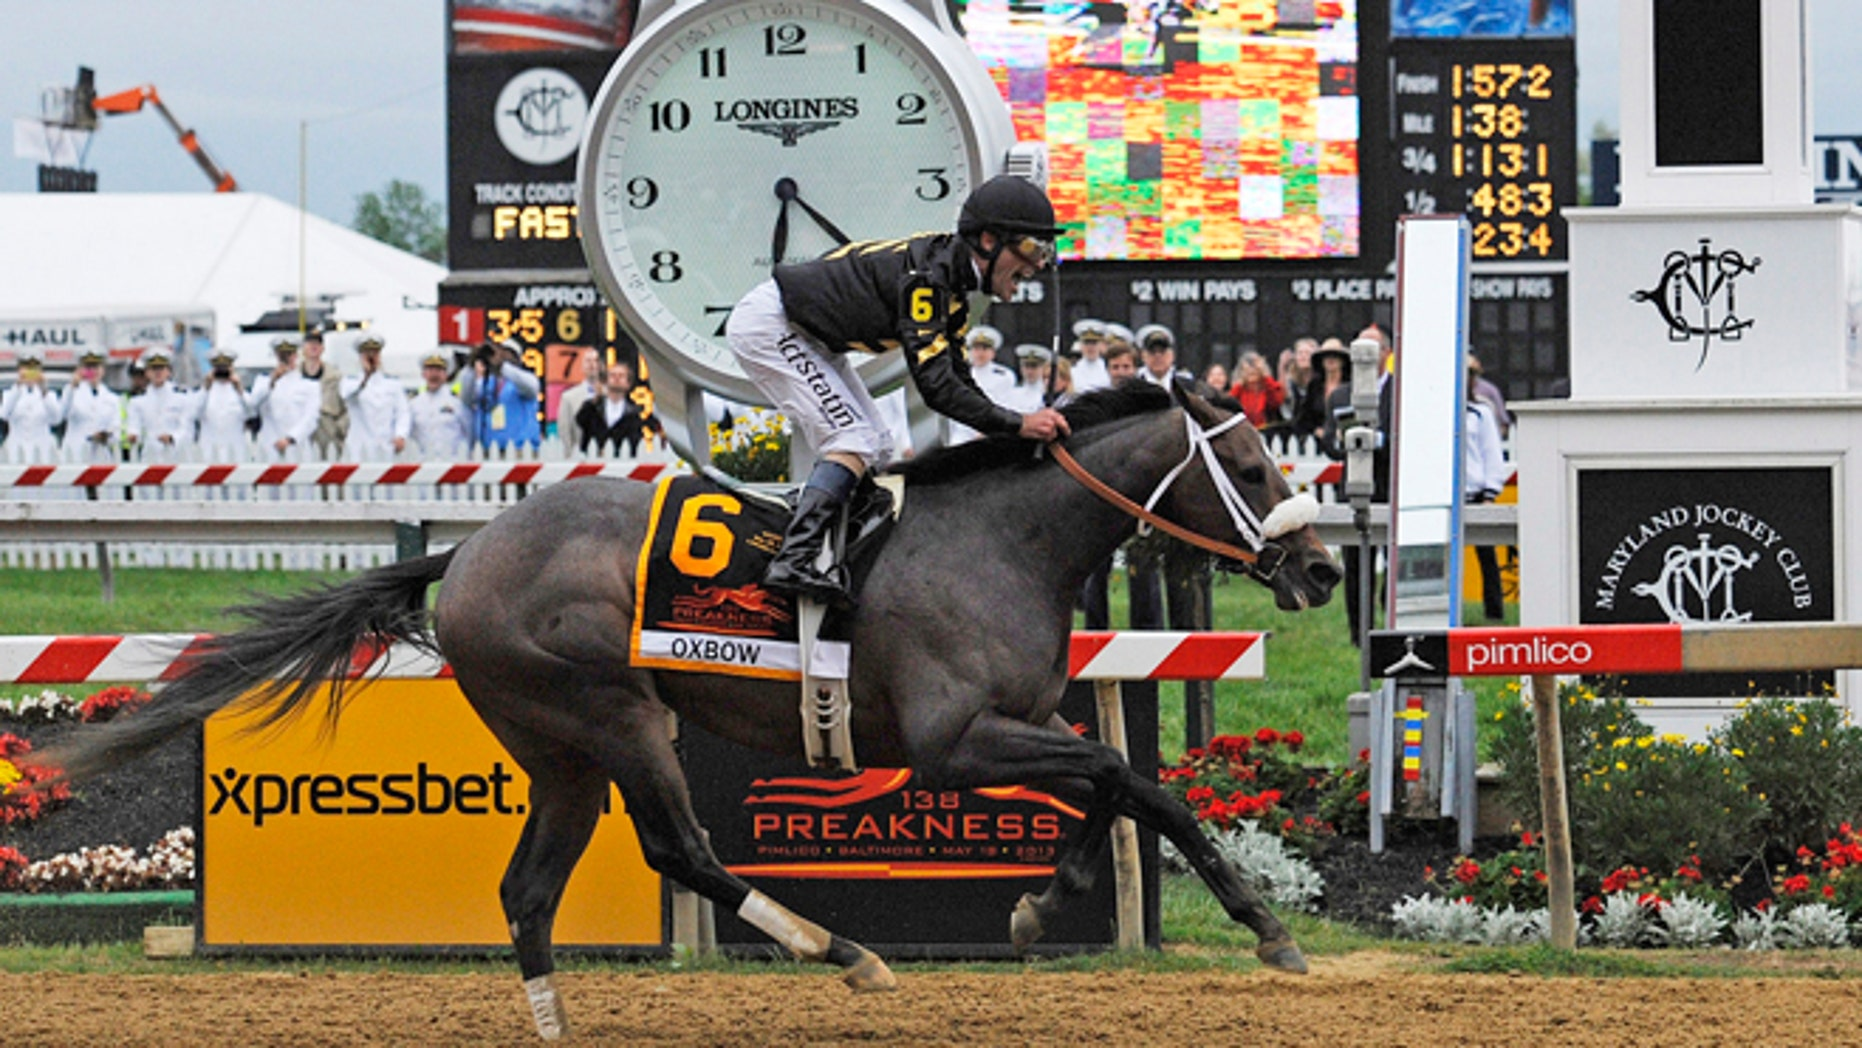 May 18, 2013: Oxbow, ridden by jockey Gary Stevens, wins the 138th Preakness Stakes horse race at Pimlico Race Course in Baltimore.